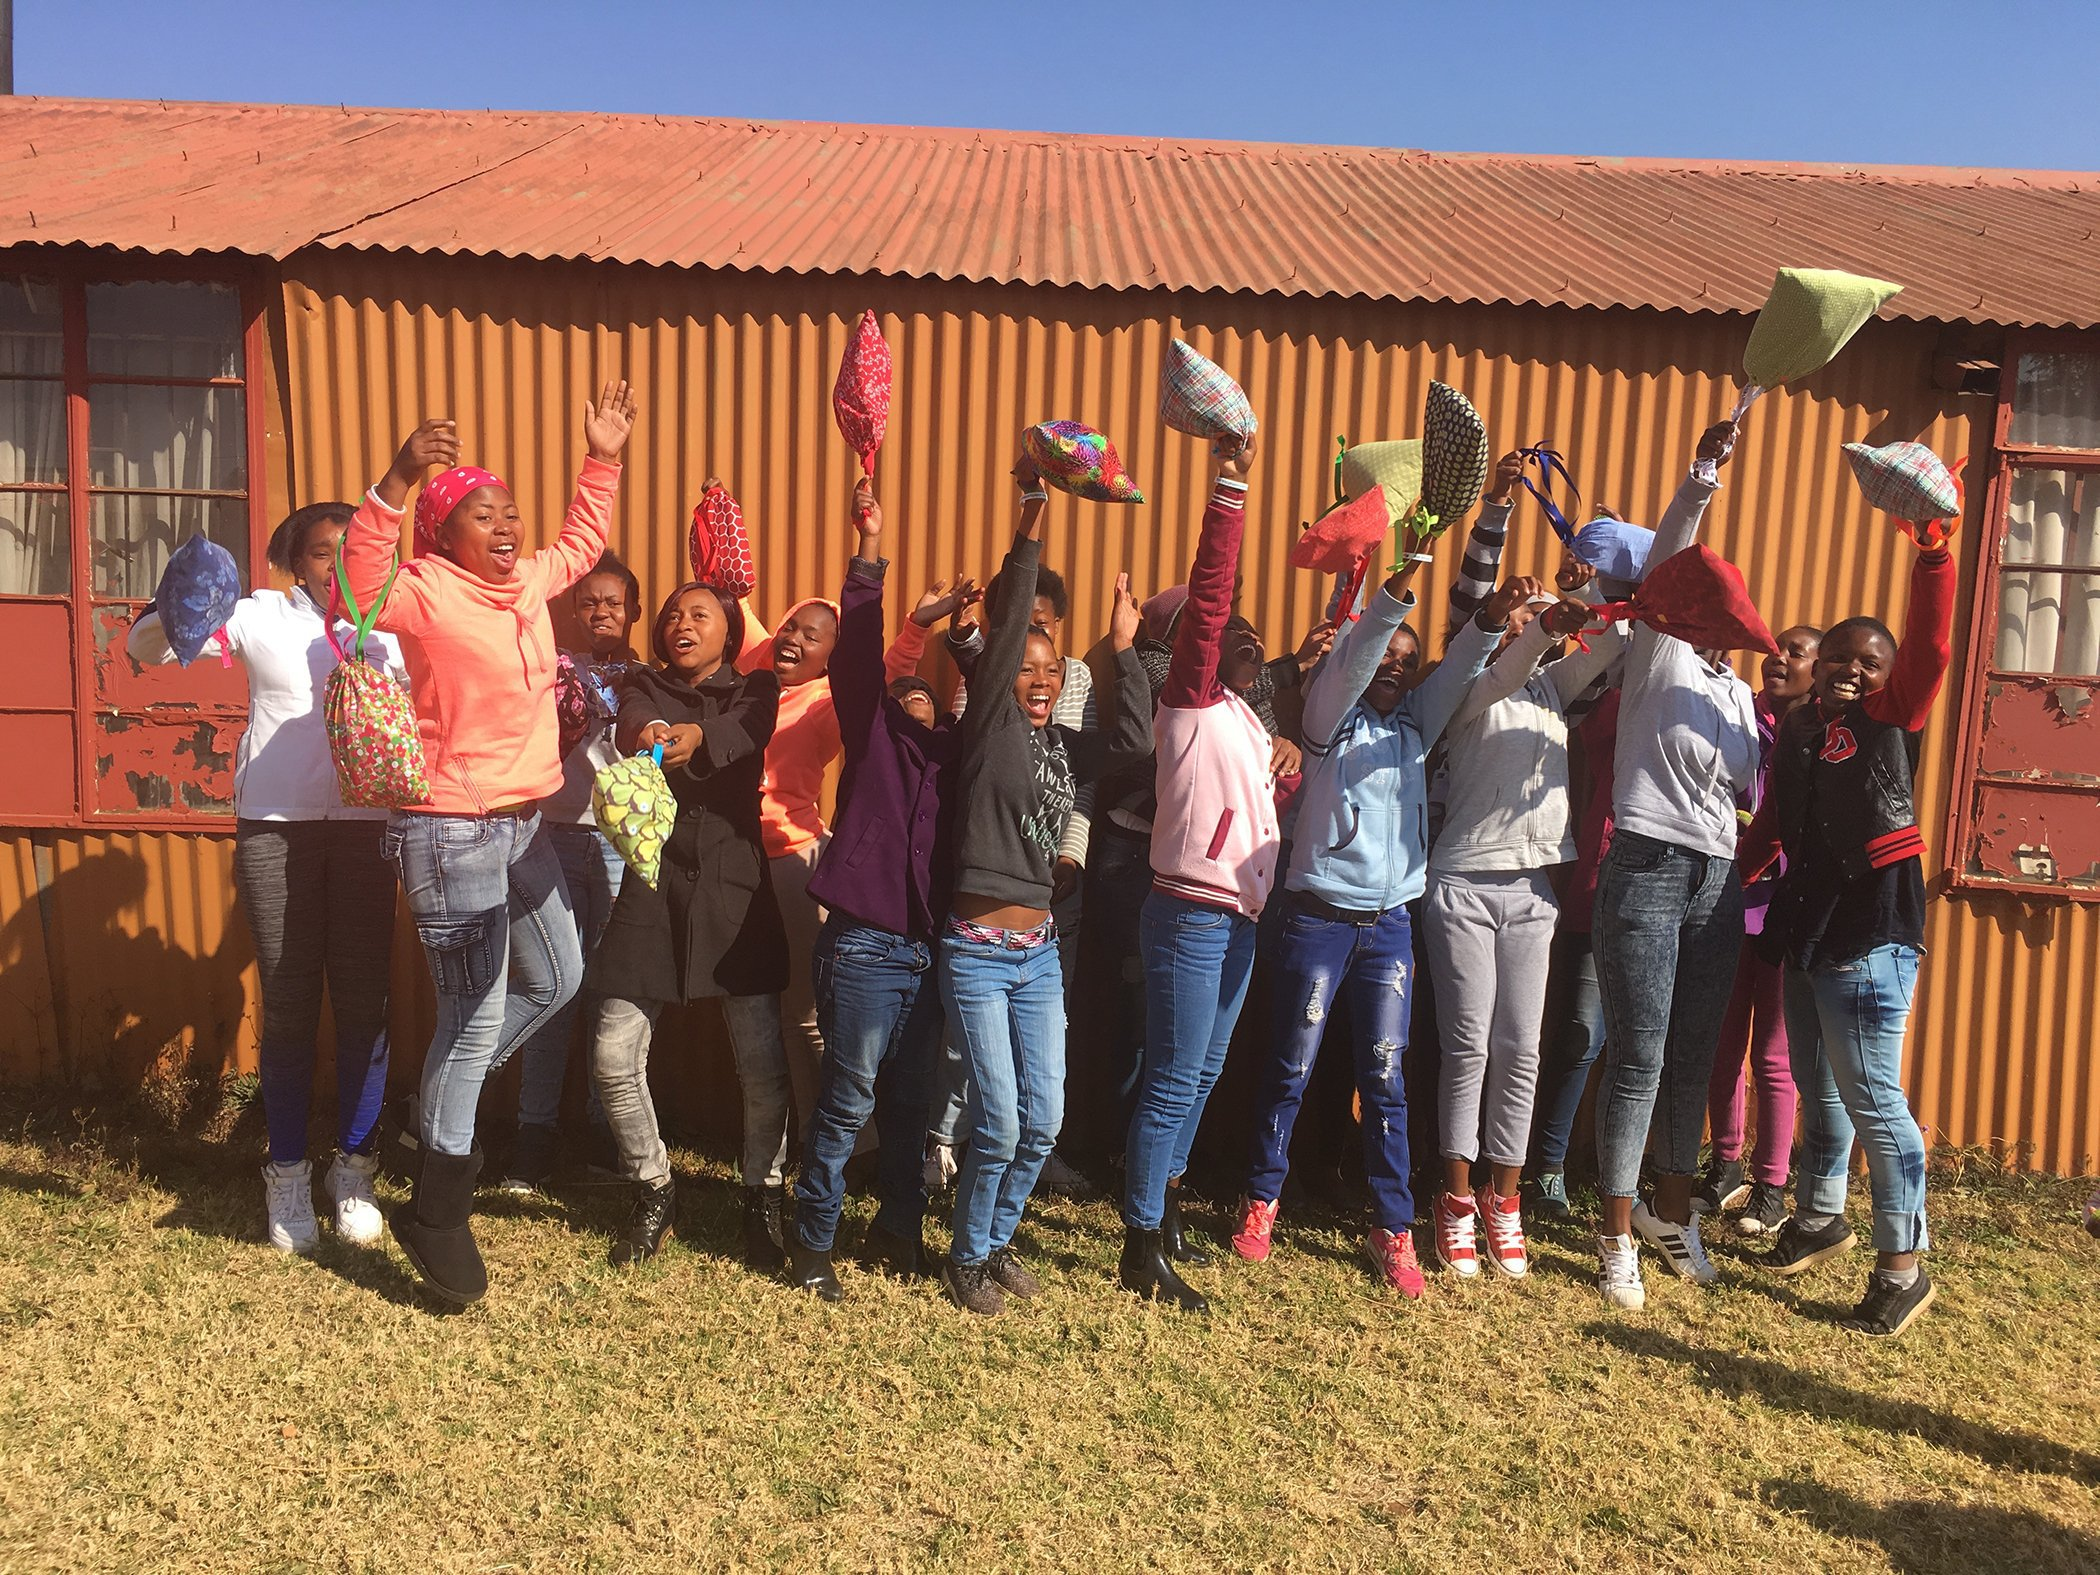 south-africa-mhm-schools-005.jpg__2100x1575_q85_crop_subject_location-1050,790_subsampling-2_upscale.jpg